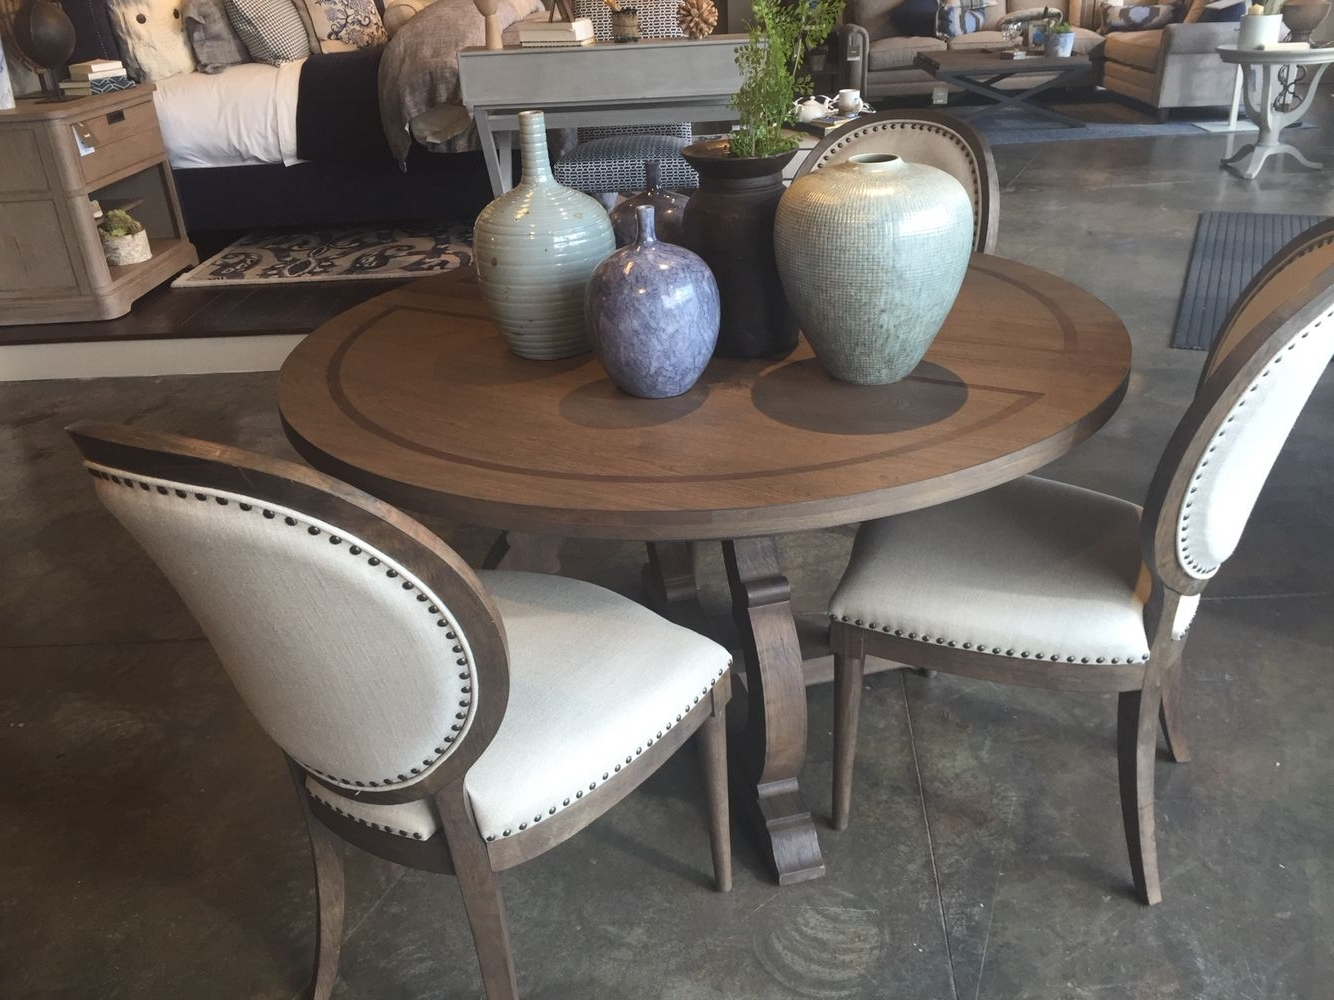 Artisanal Dining Tables Within Most Current Bassett – Artisanal Round Table, Chadwick Brown (View 6 of 25)